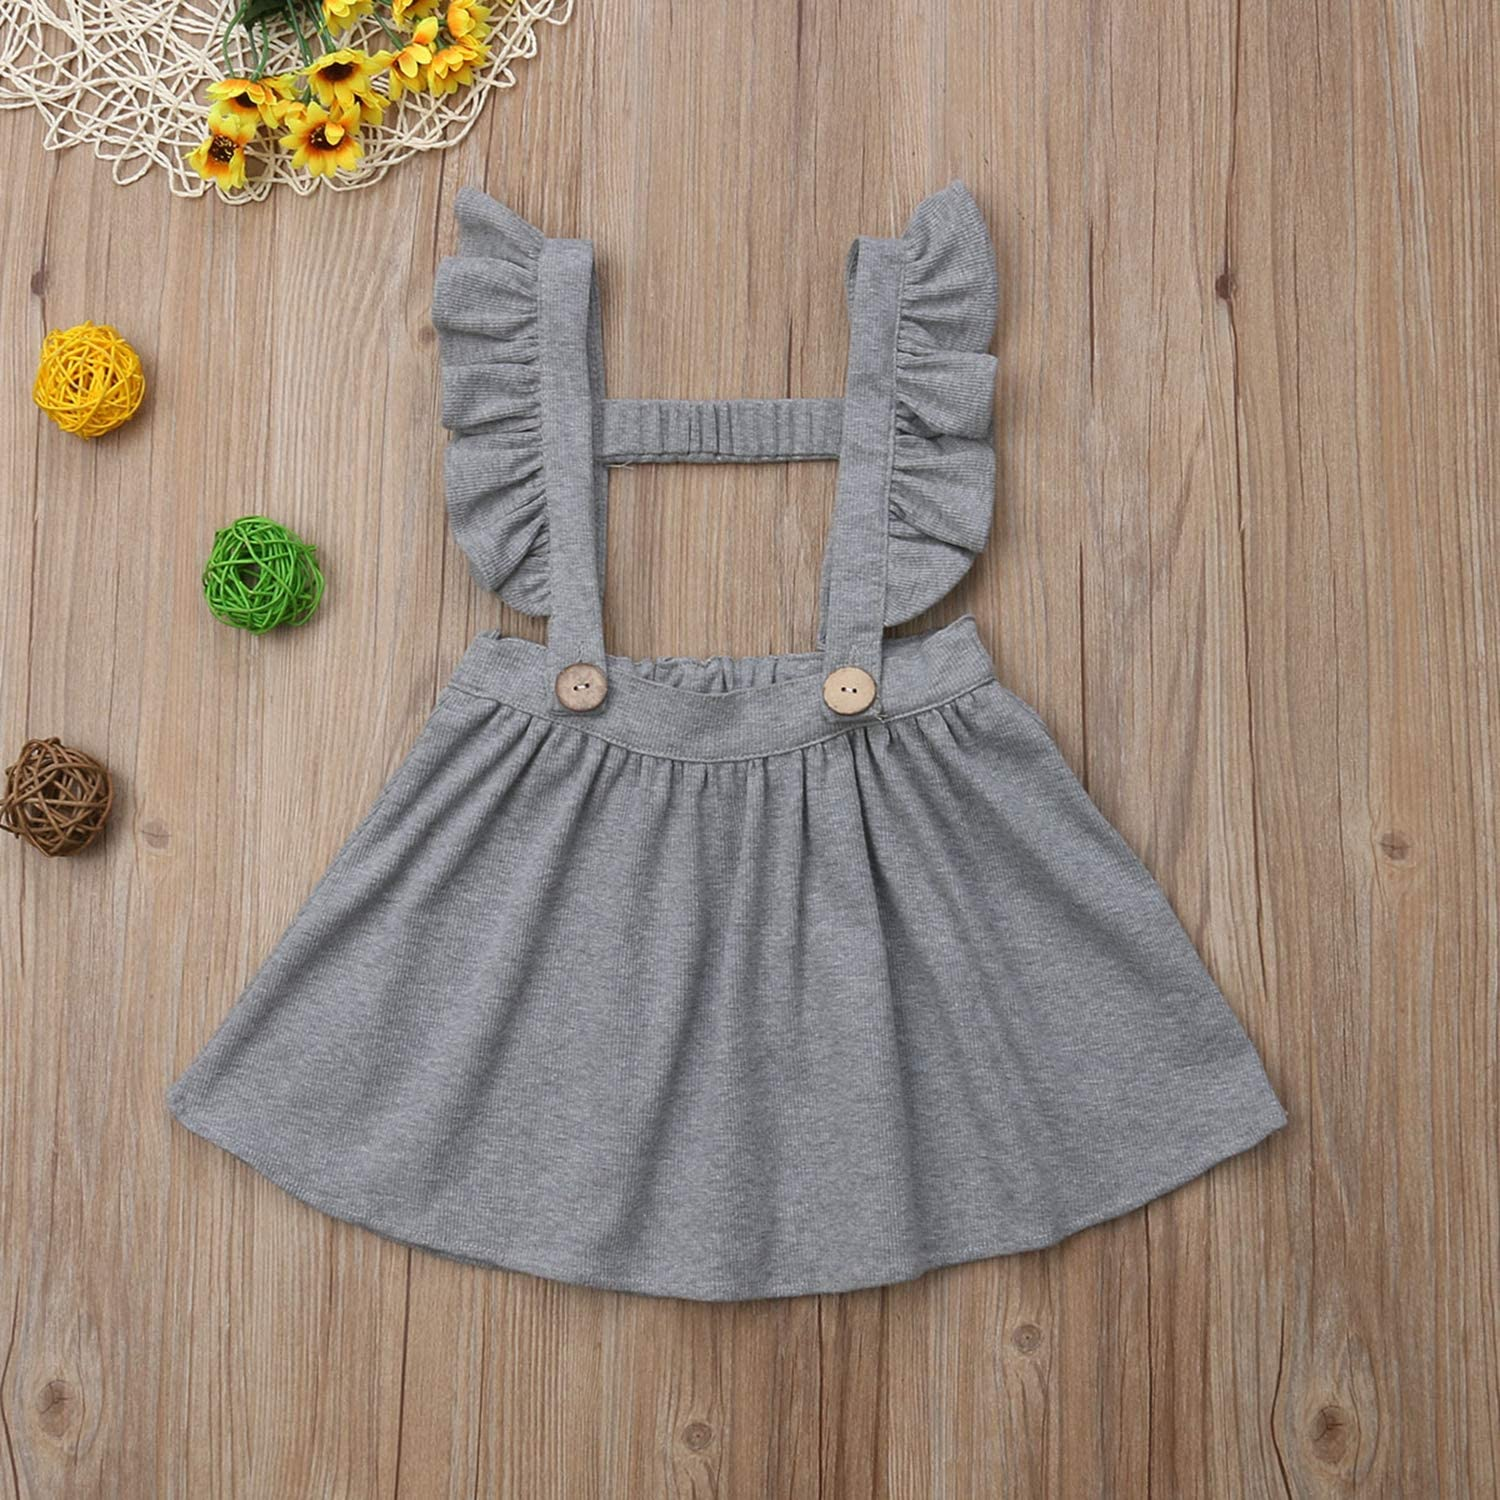 Beancan New Baby Outfit New Toddler Baby Kids Girl Strap Suspender Skirt Overalls Skirt Outfit Clothes 0-5T Gray